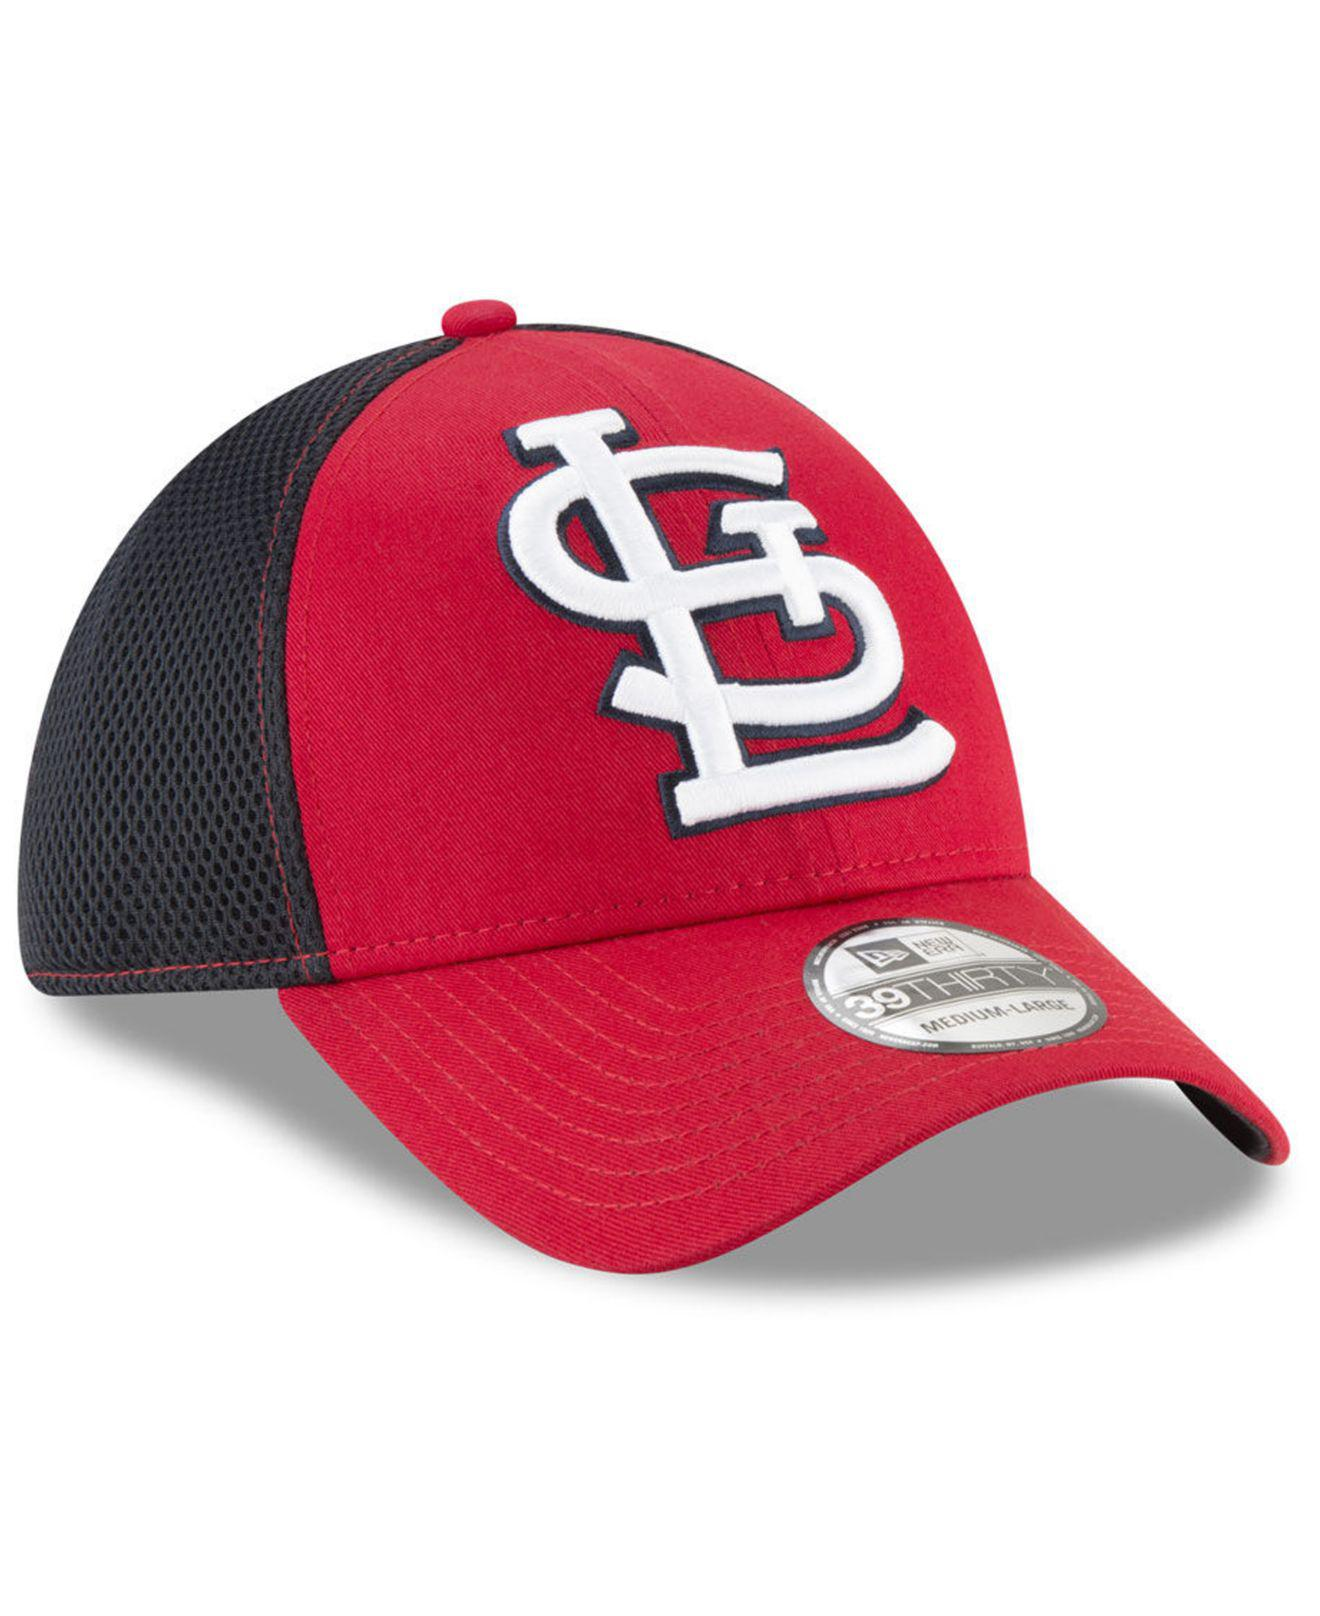 best website 47adb 51457 ... promo code st. louis cardinals mega team neo 39thirty cap for men lyst.  view